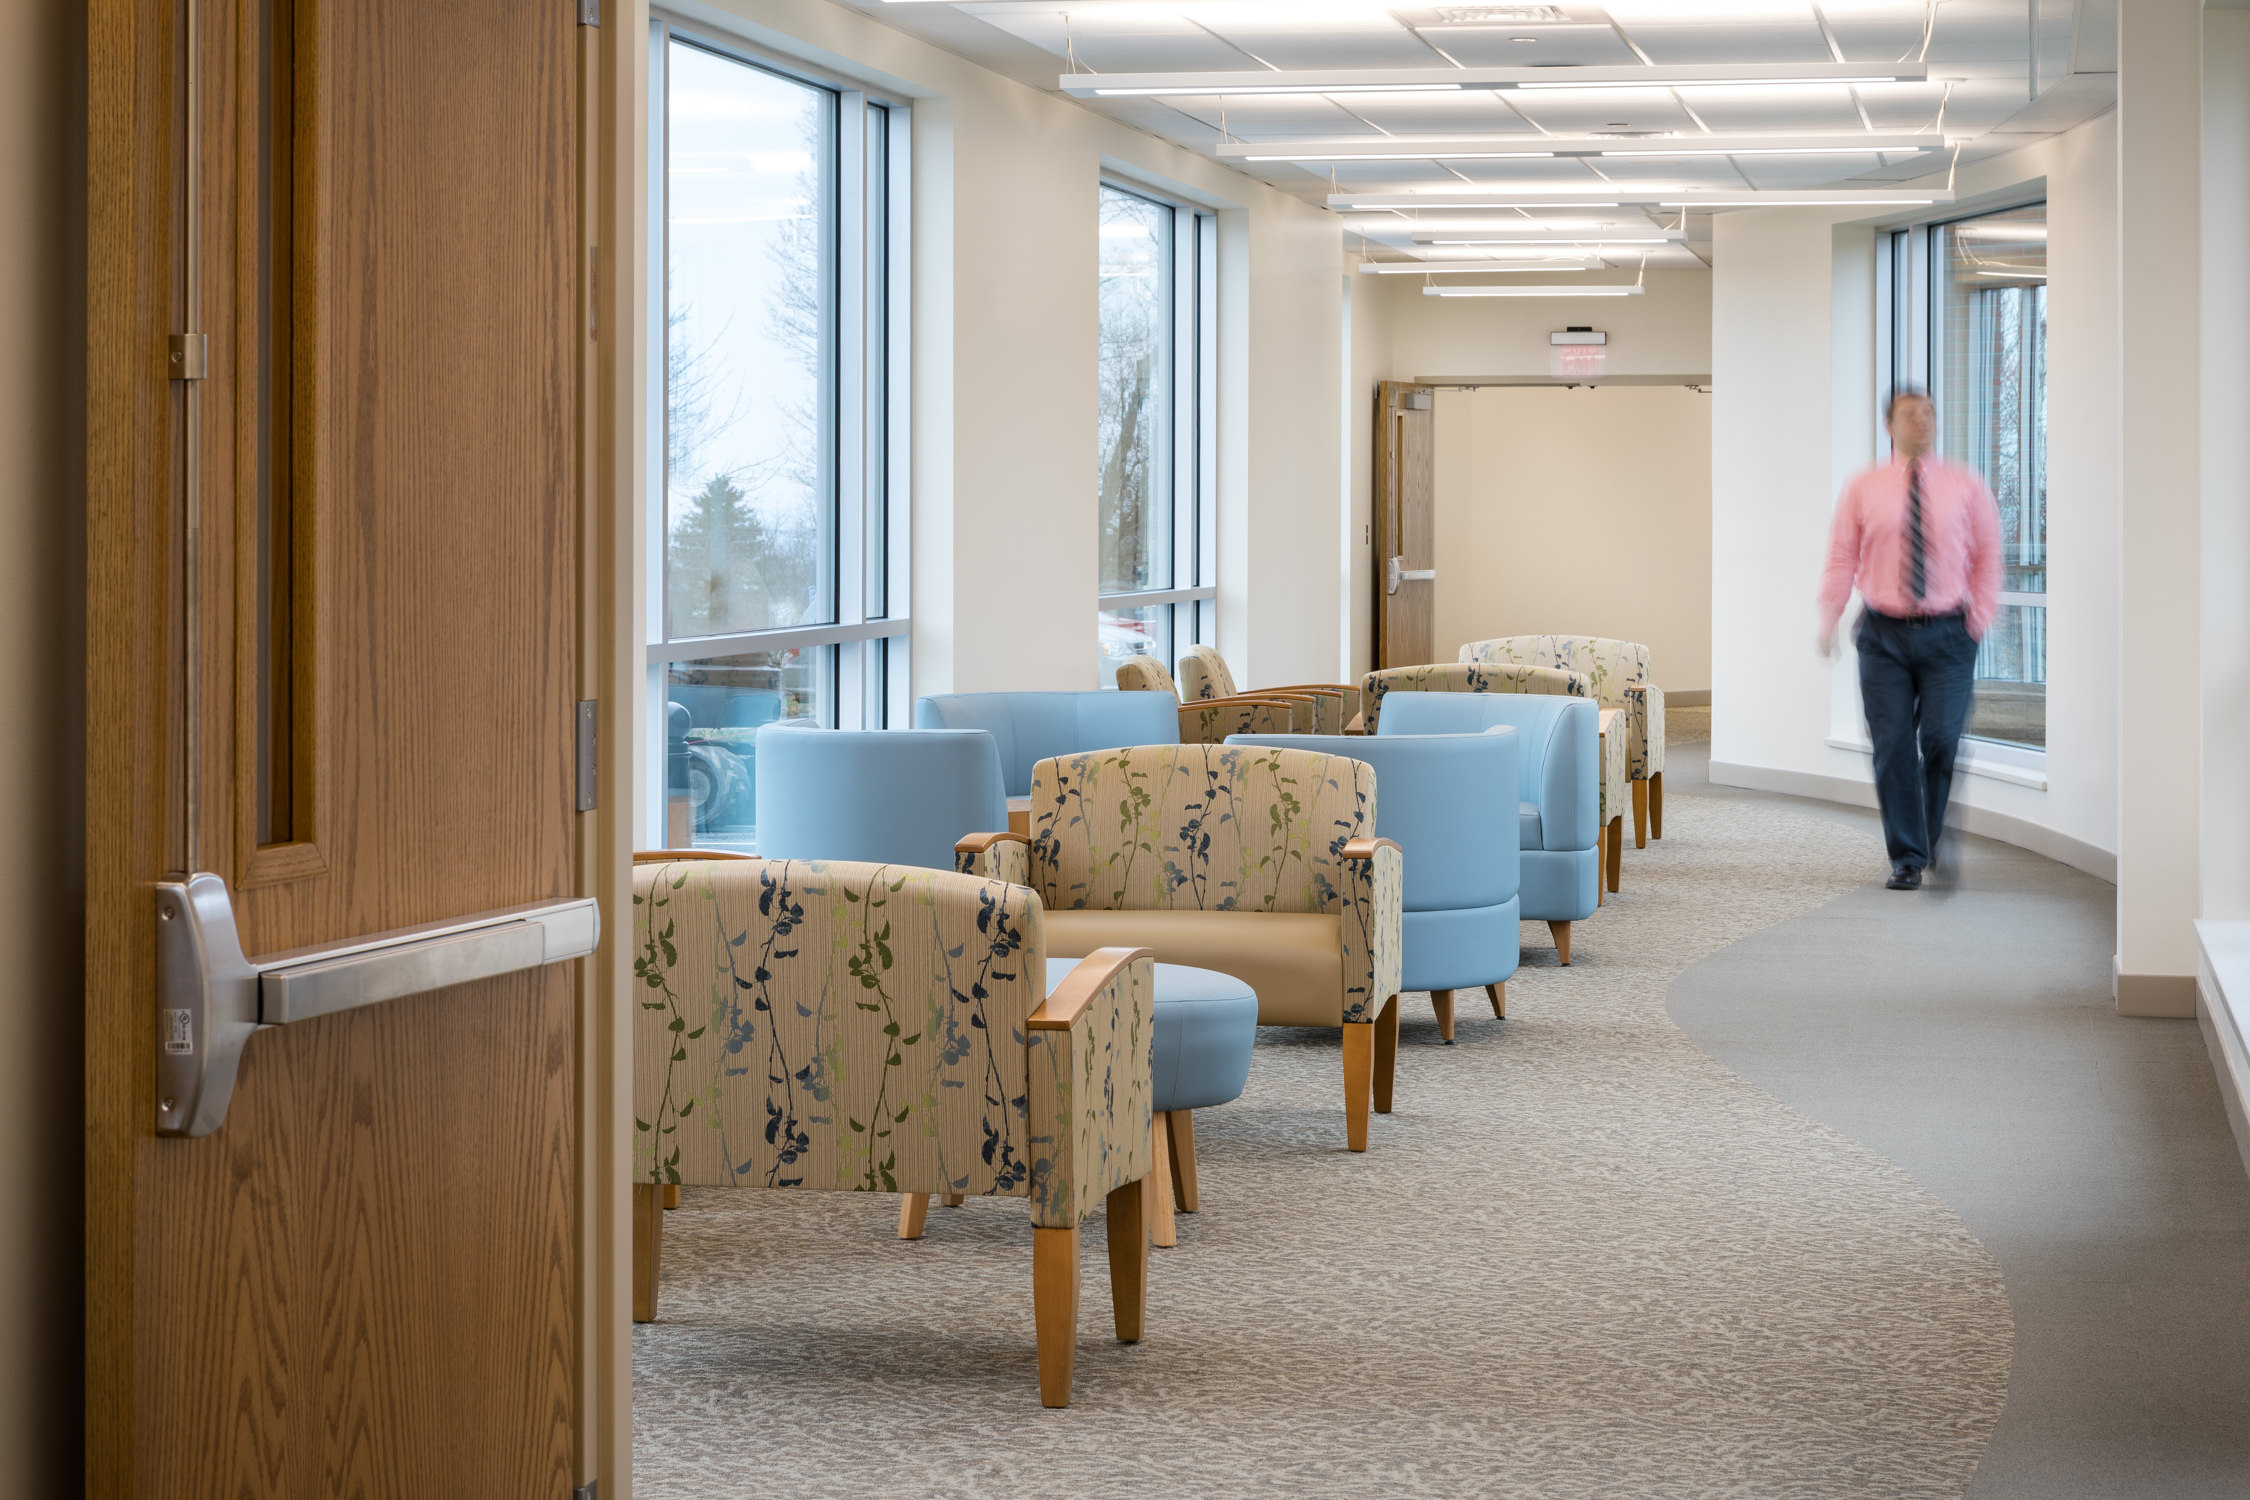 View of the connecting corridor in Northwestern Medical Center in St. Albans by Vermont photographer Stina Booth